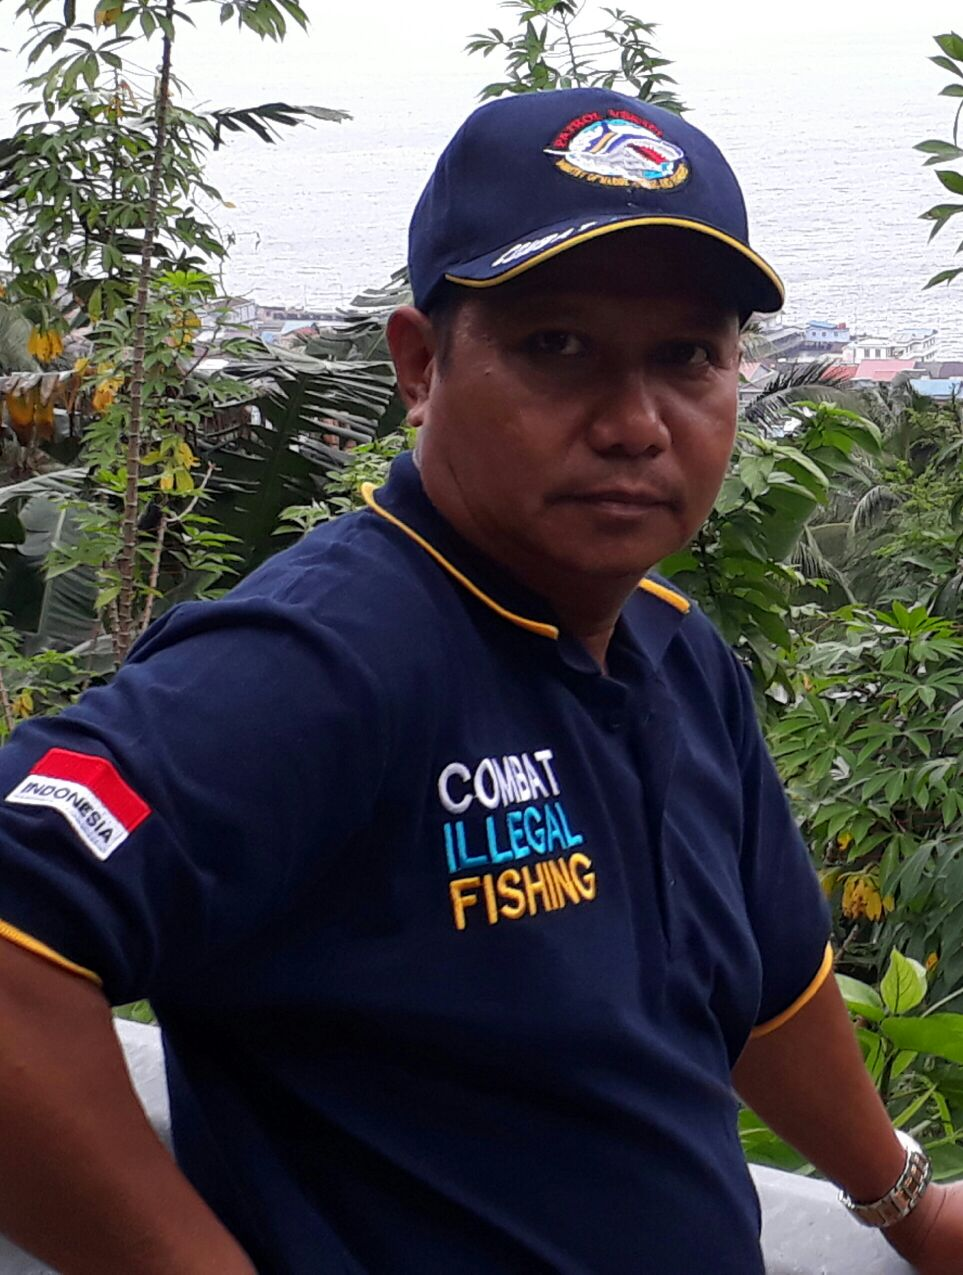 Kaos dan Topi Combat Illegal Fishing